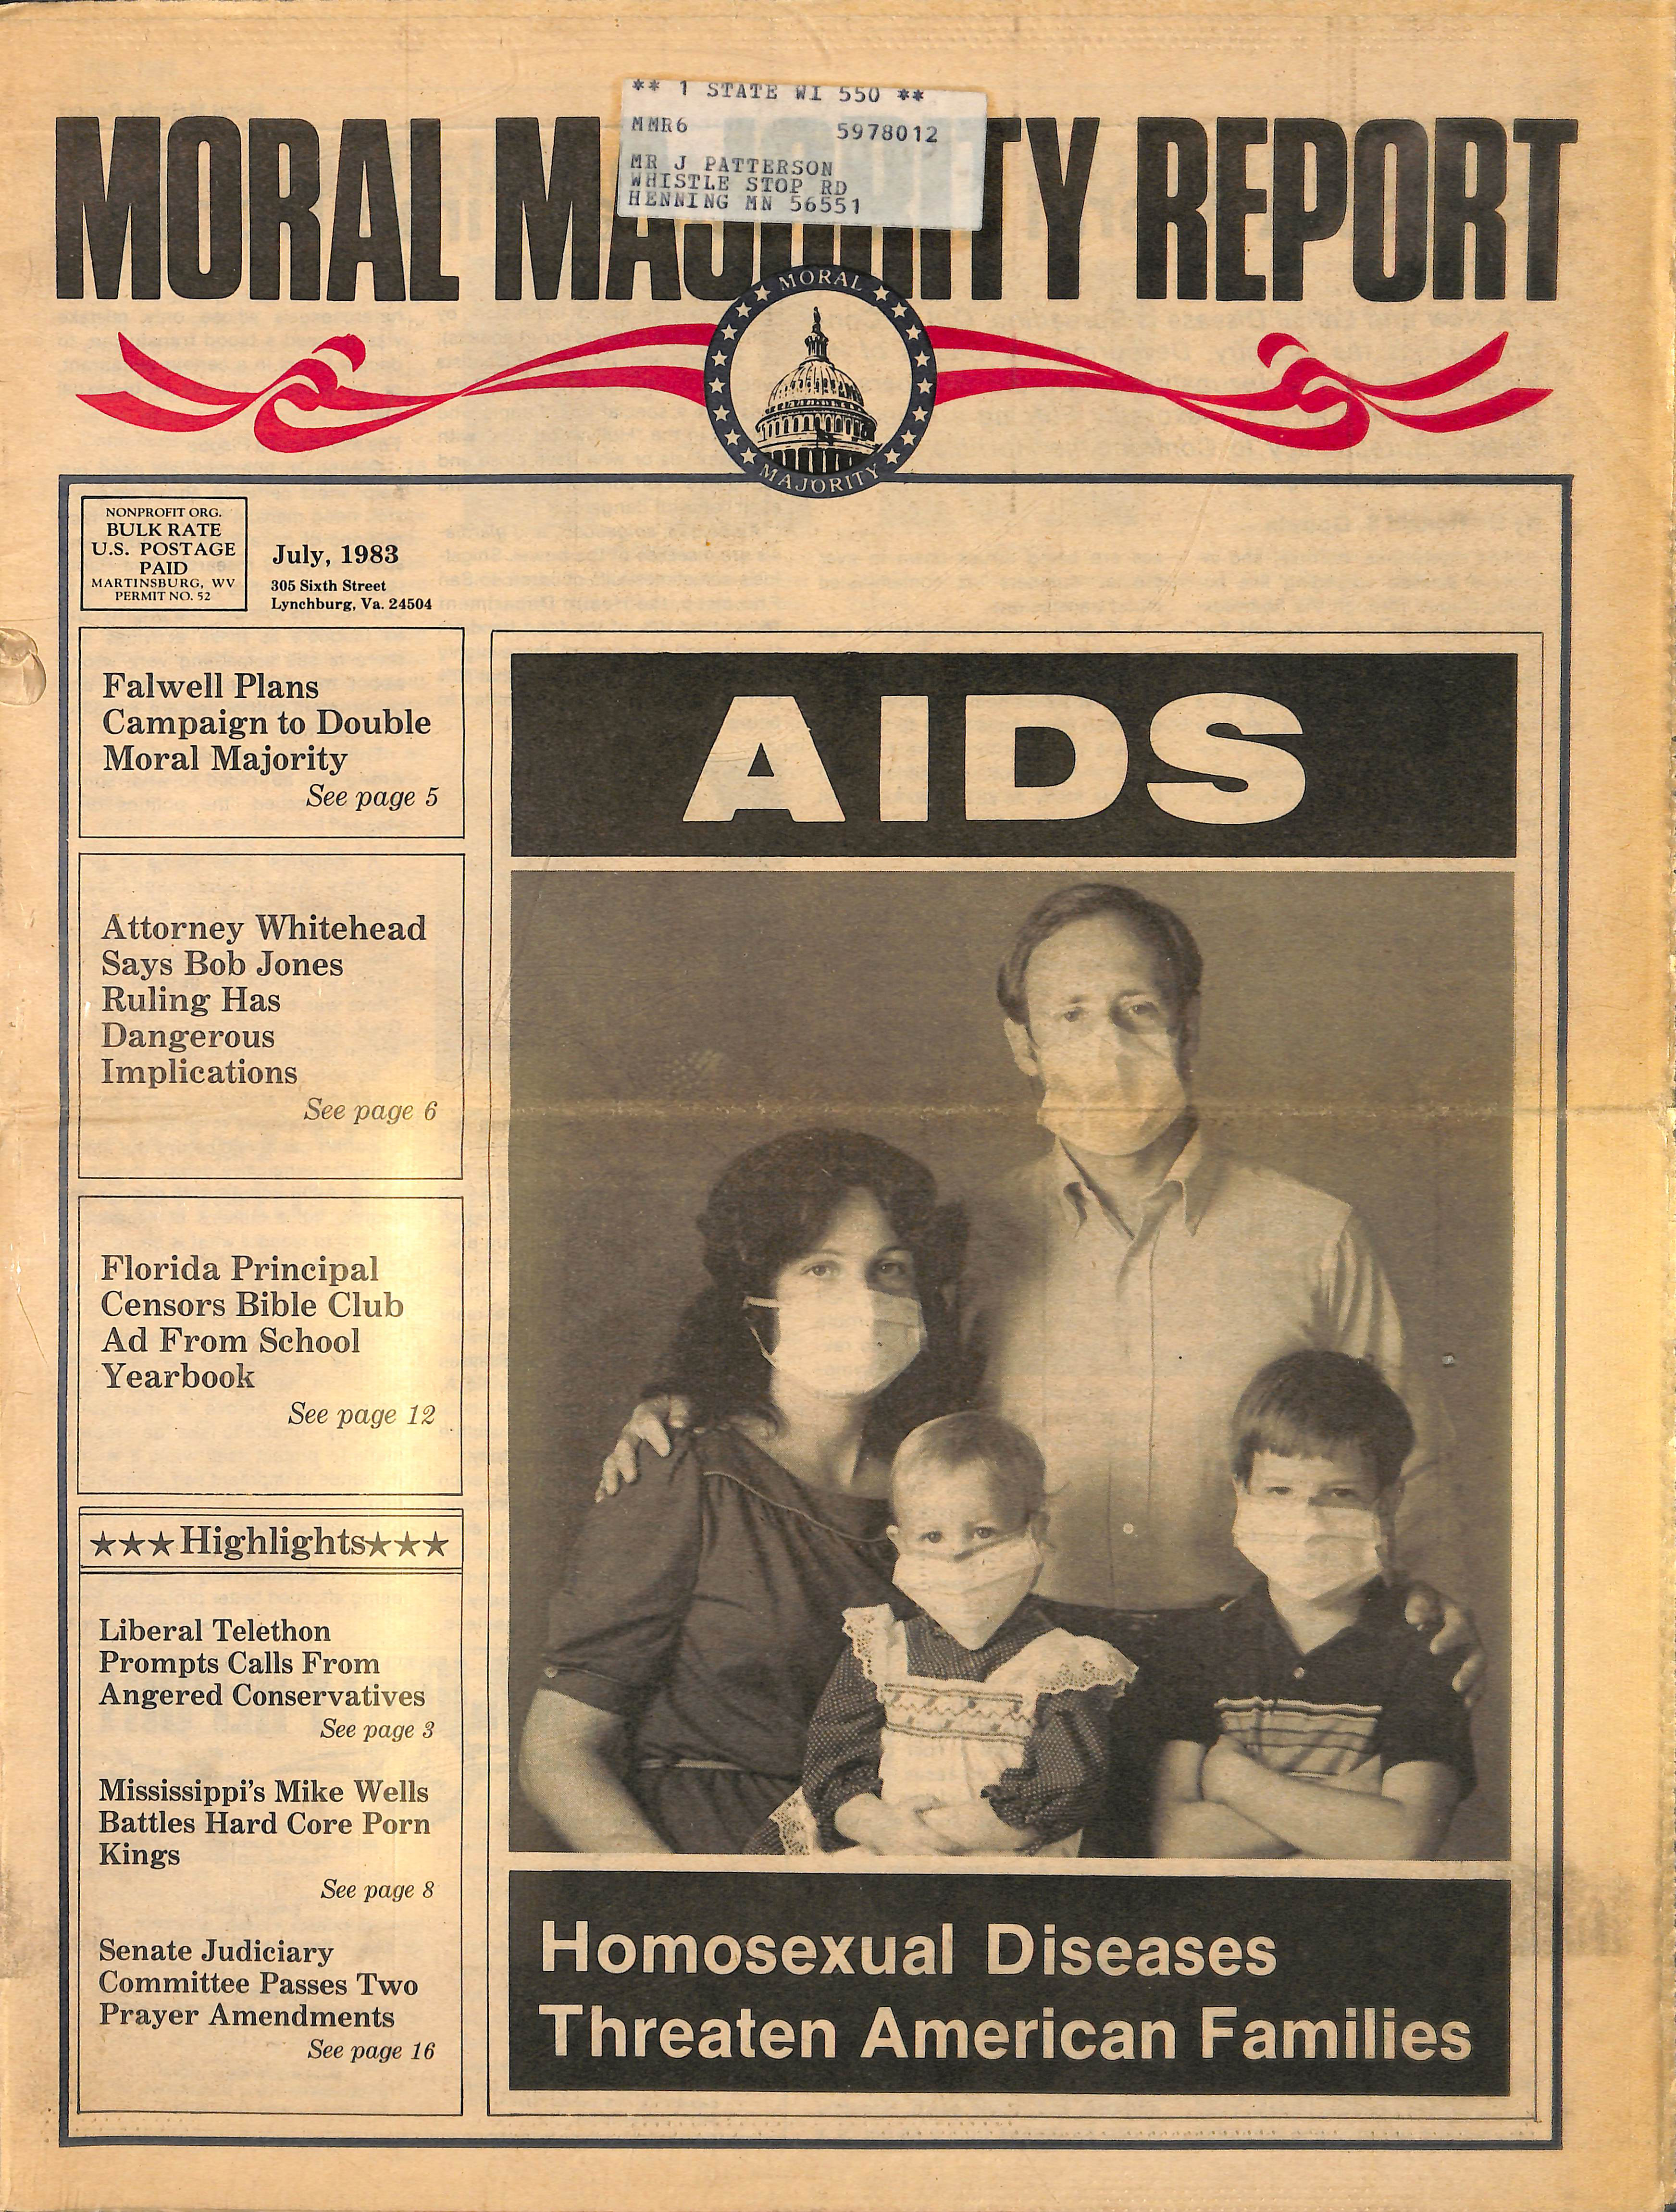 Although HIV/AIDS is not an airborne disease, in July 2983 Jerry Falwell's Moral Majority Report used an image of a family in surgical masks to stigmatize queer people.